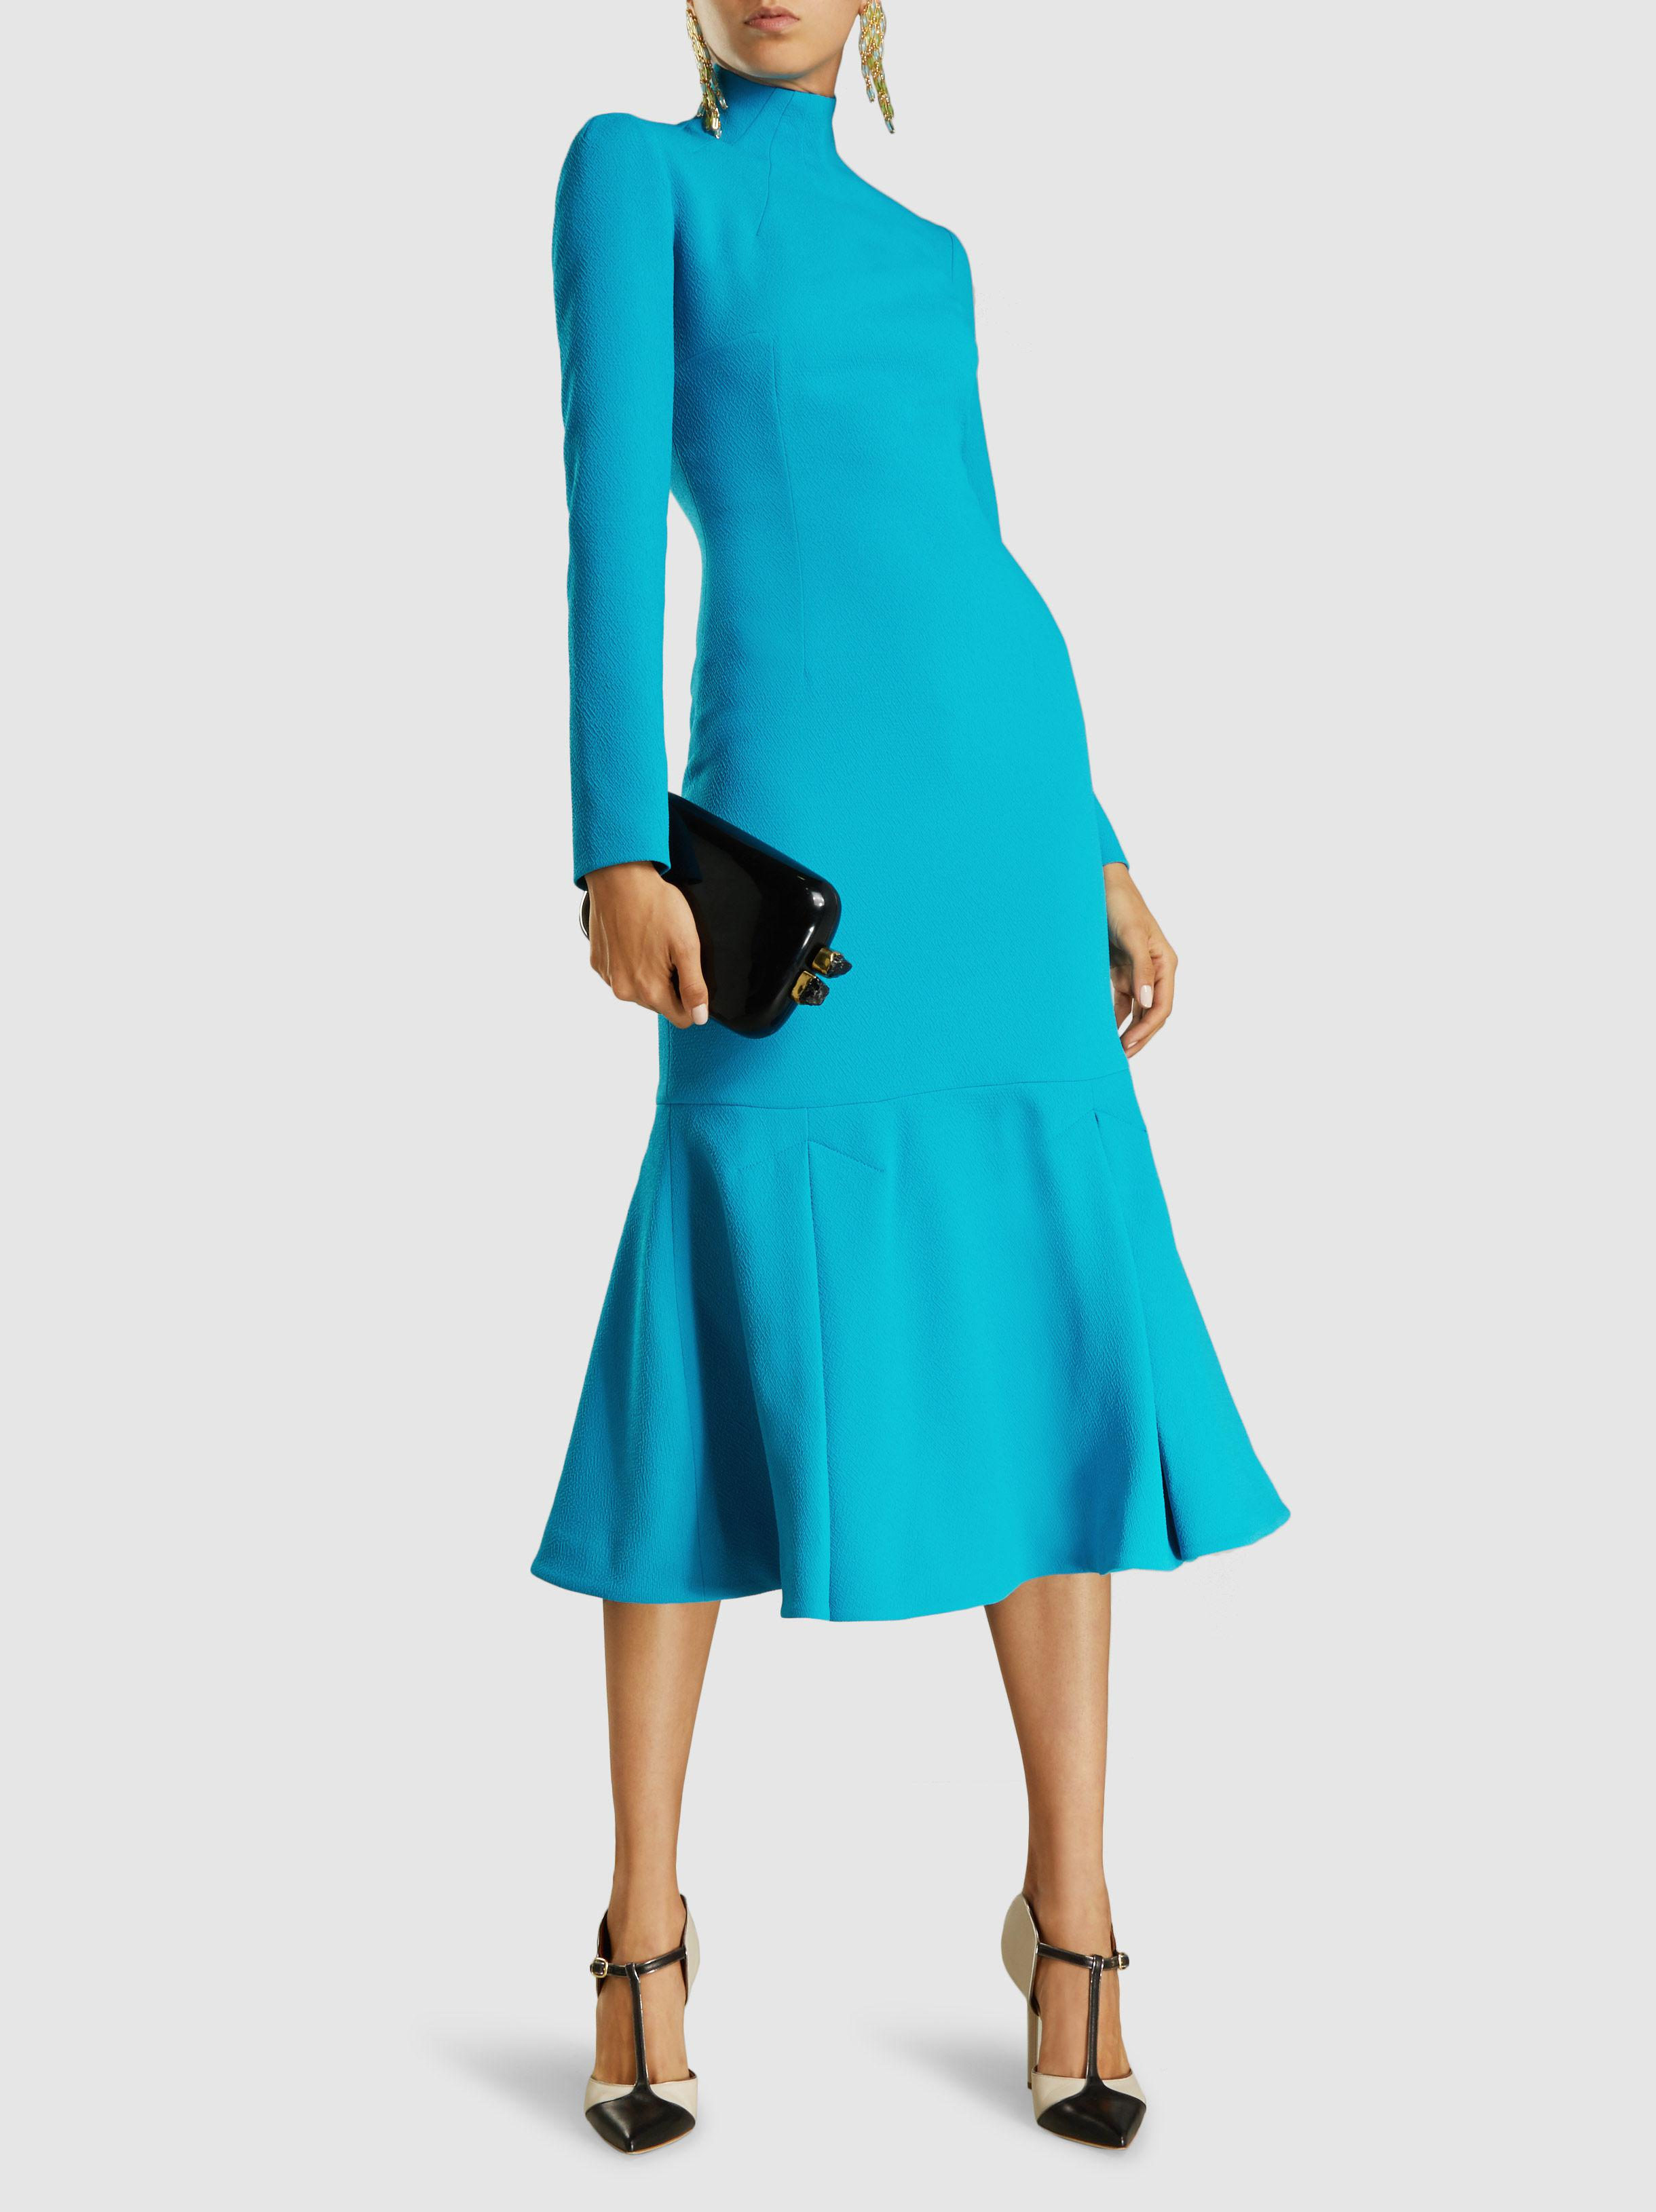 Prudence High Neck Double Crepe Dress- Women's- Mid Blue